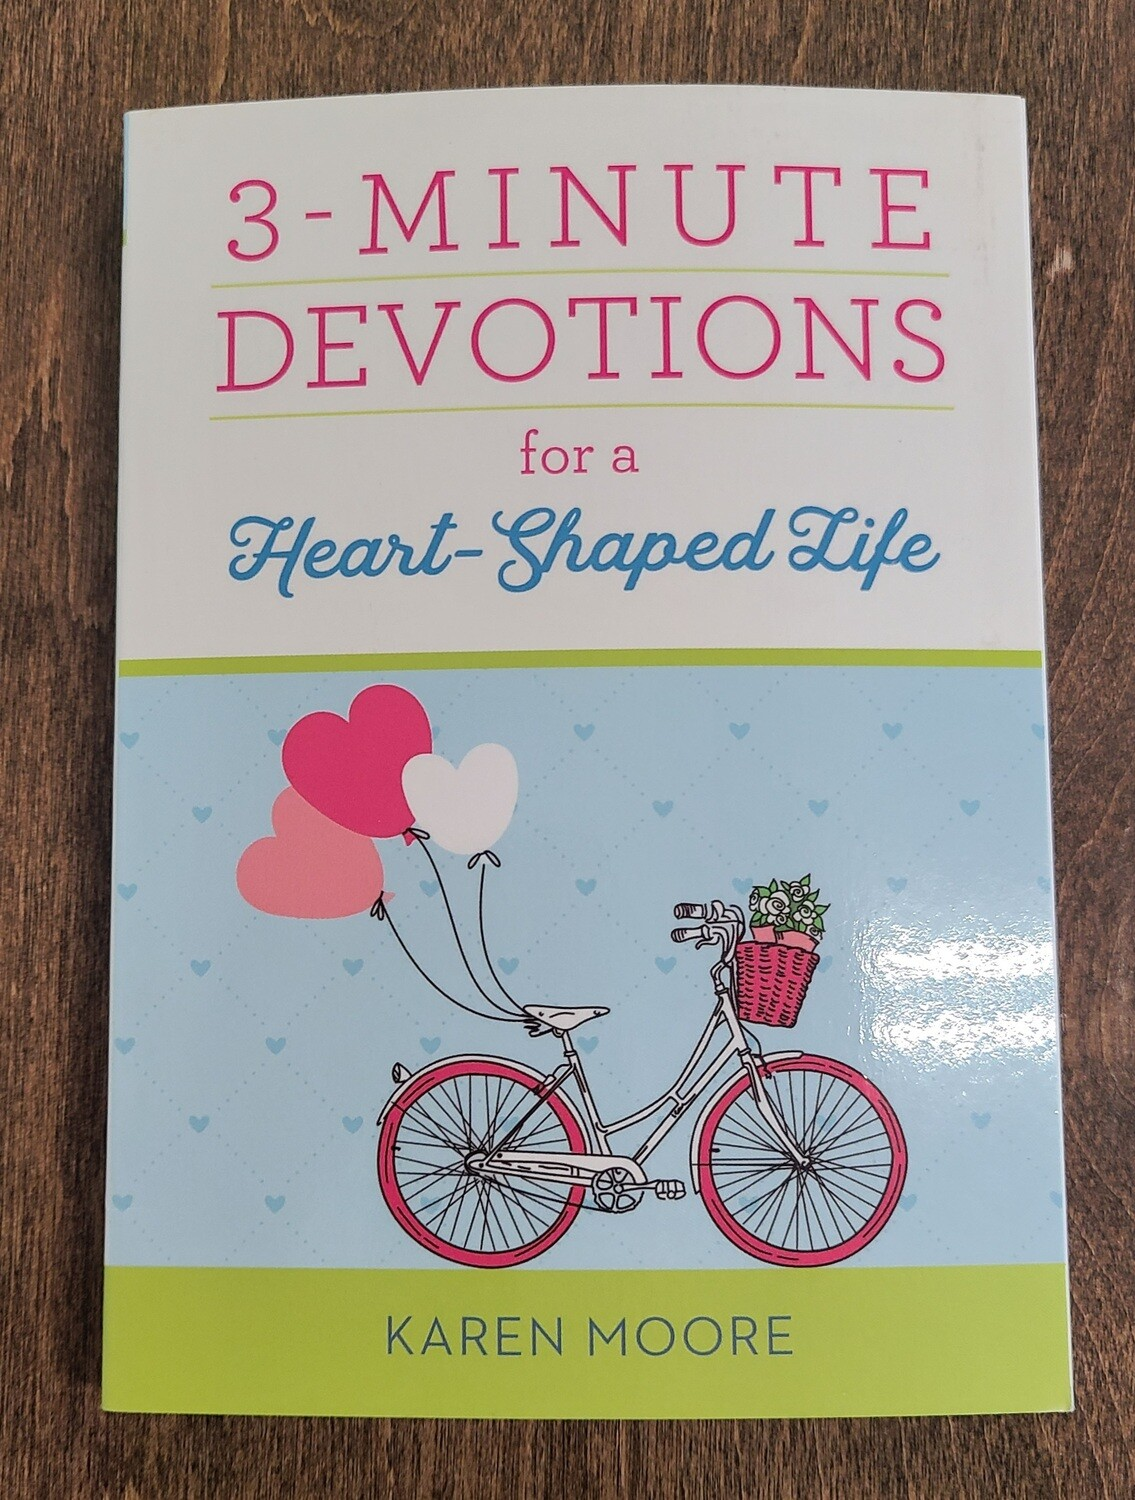 3-Minute Devotions for a Heart-Shaped Life by Karen Moore